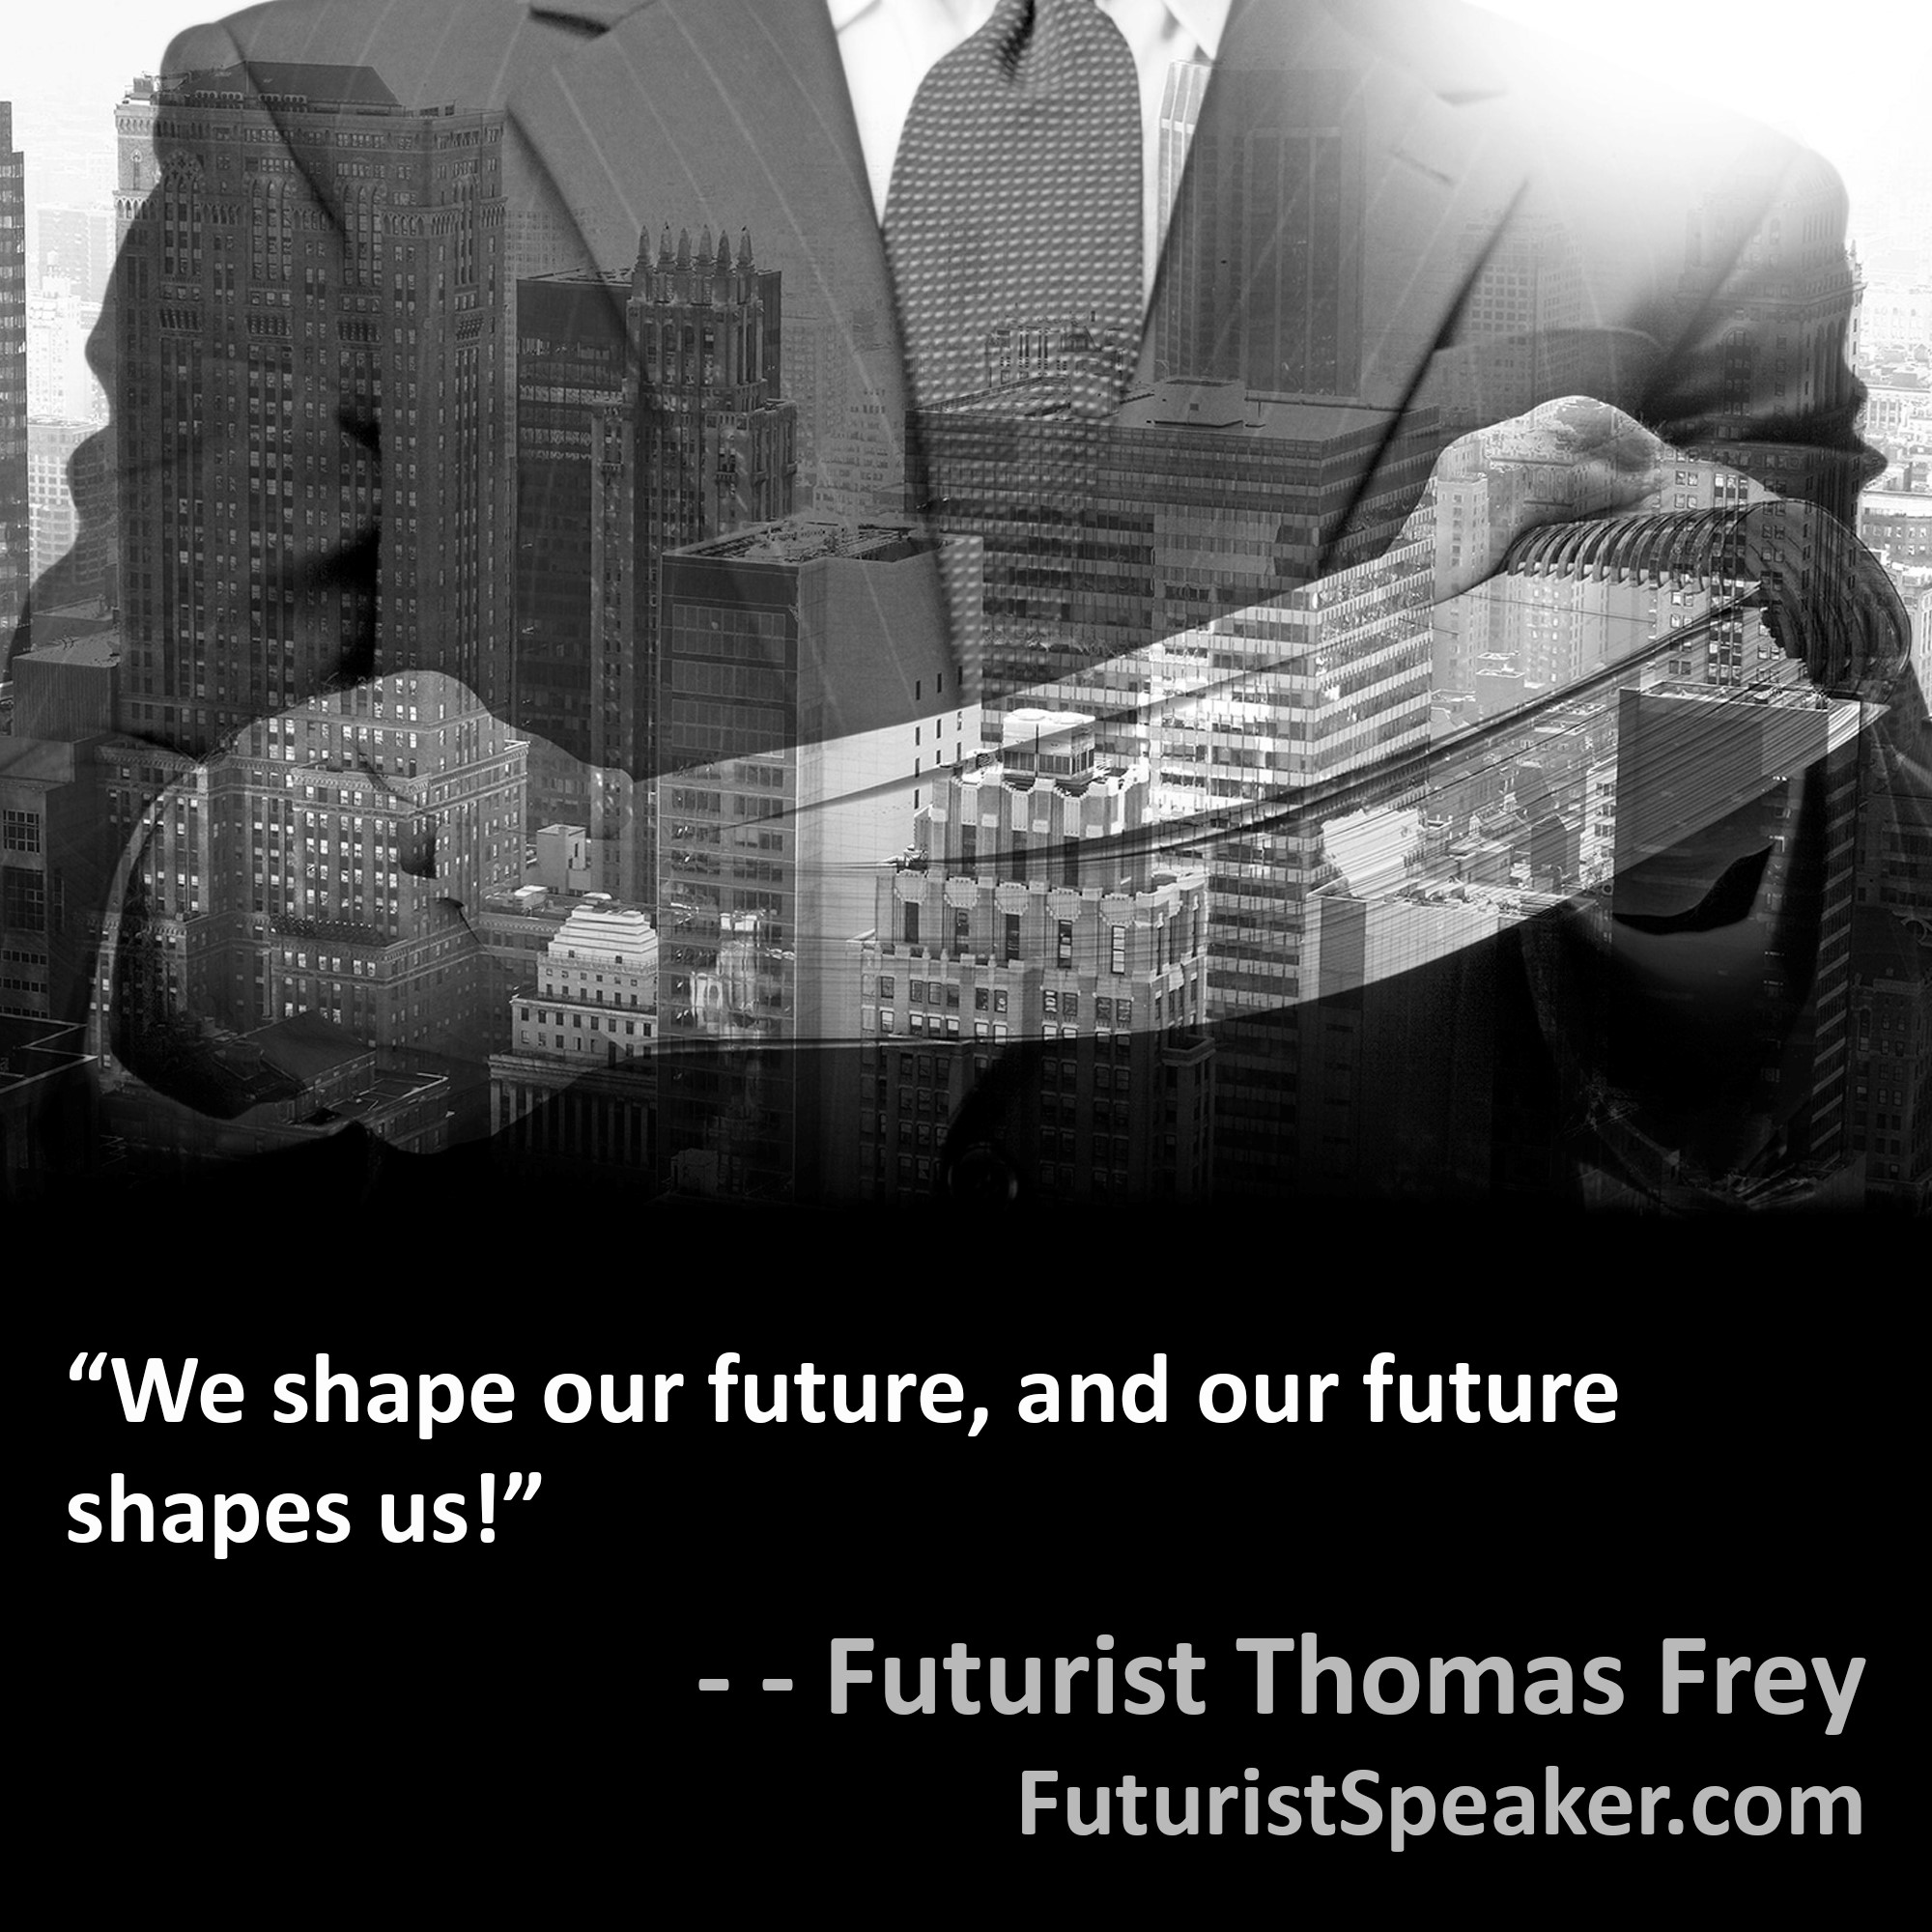 Thomas Frey Futurist Speaker Famous Quote: We shape our future, and our future shapes us.